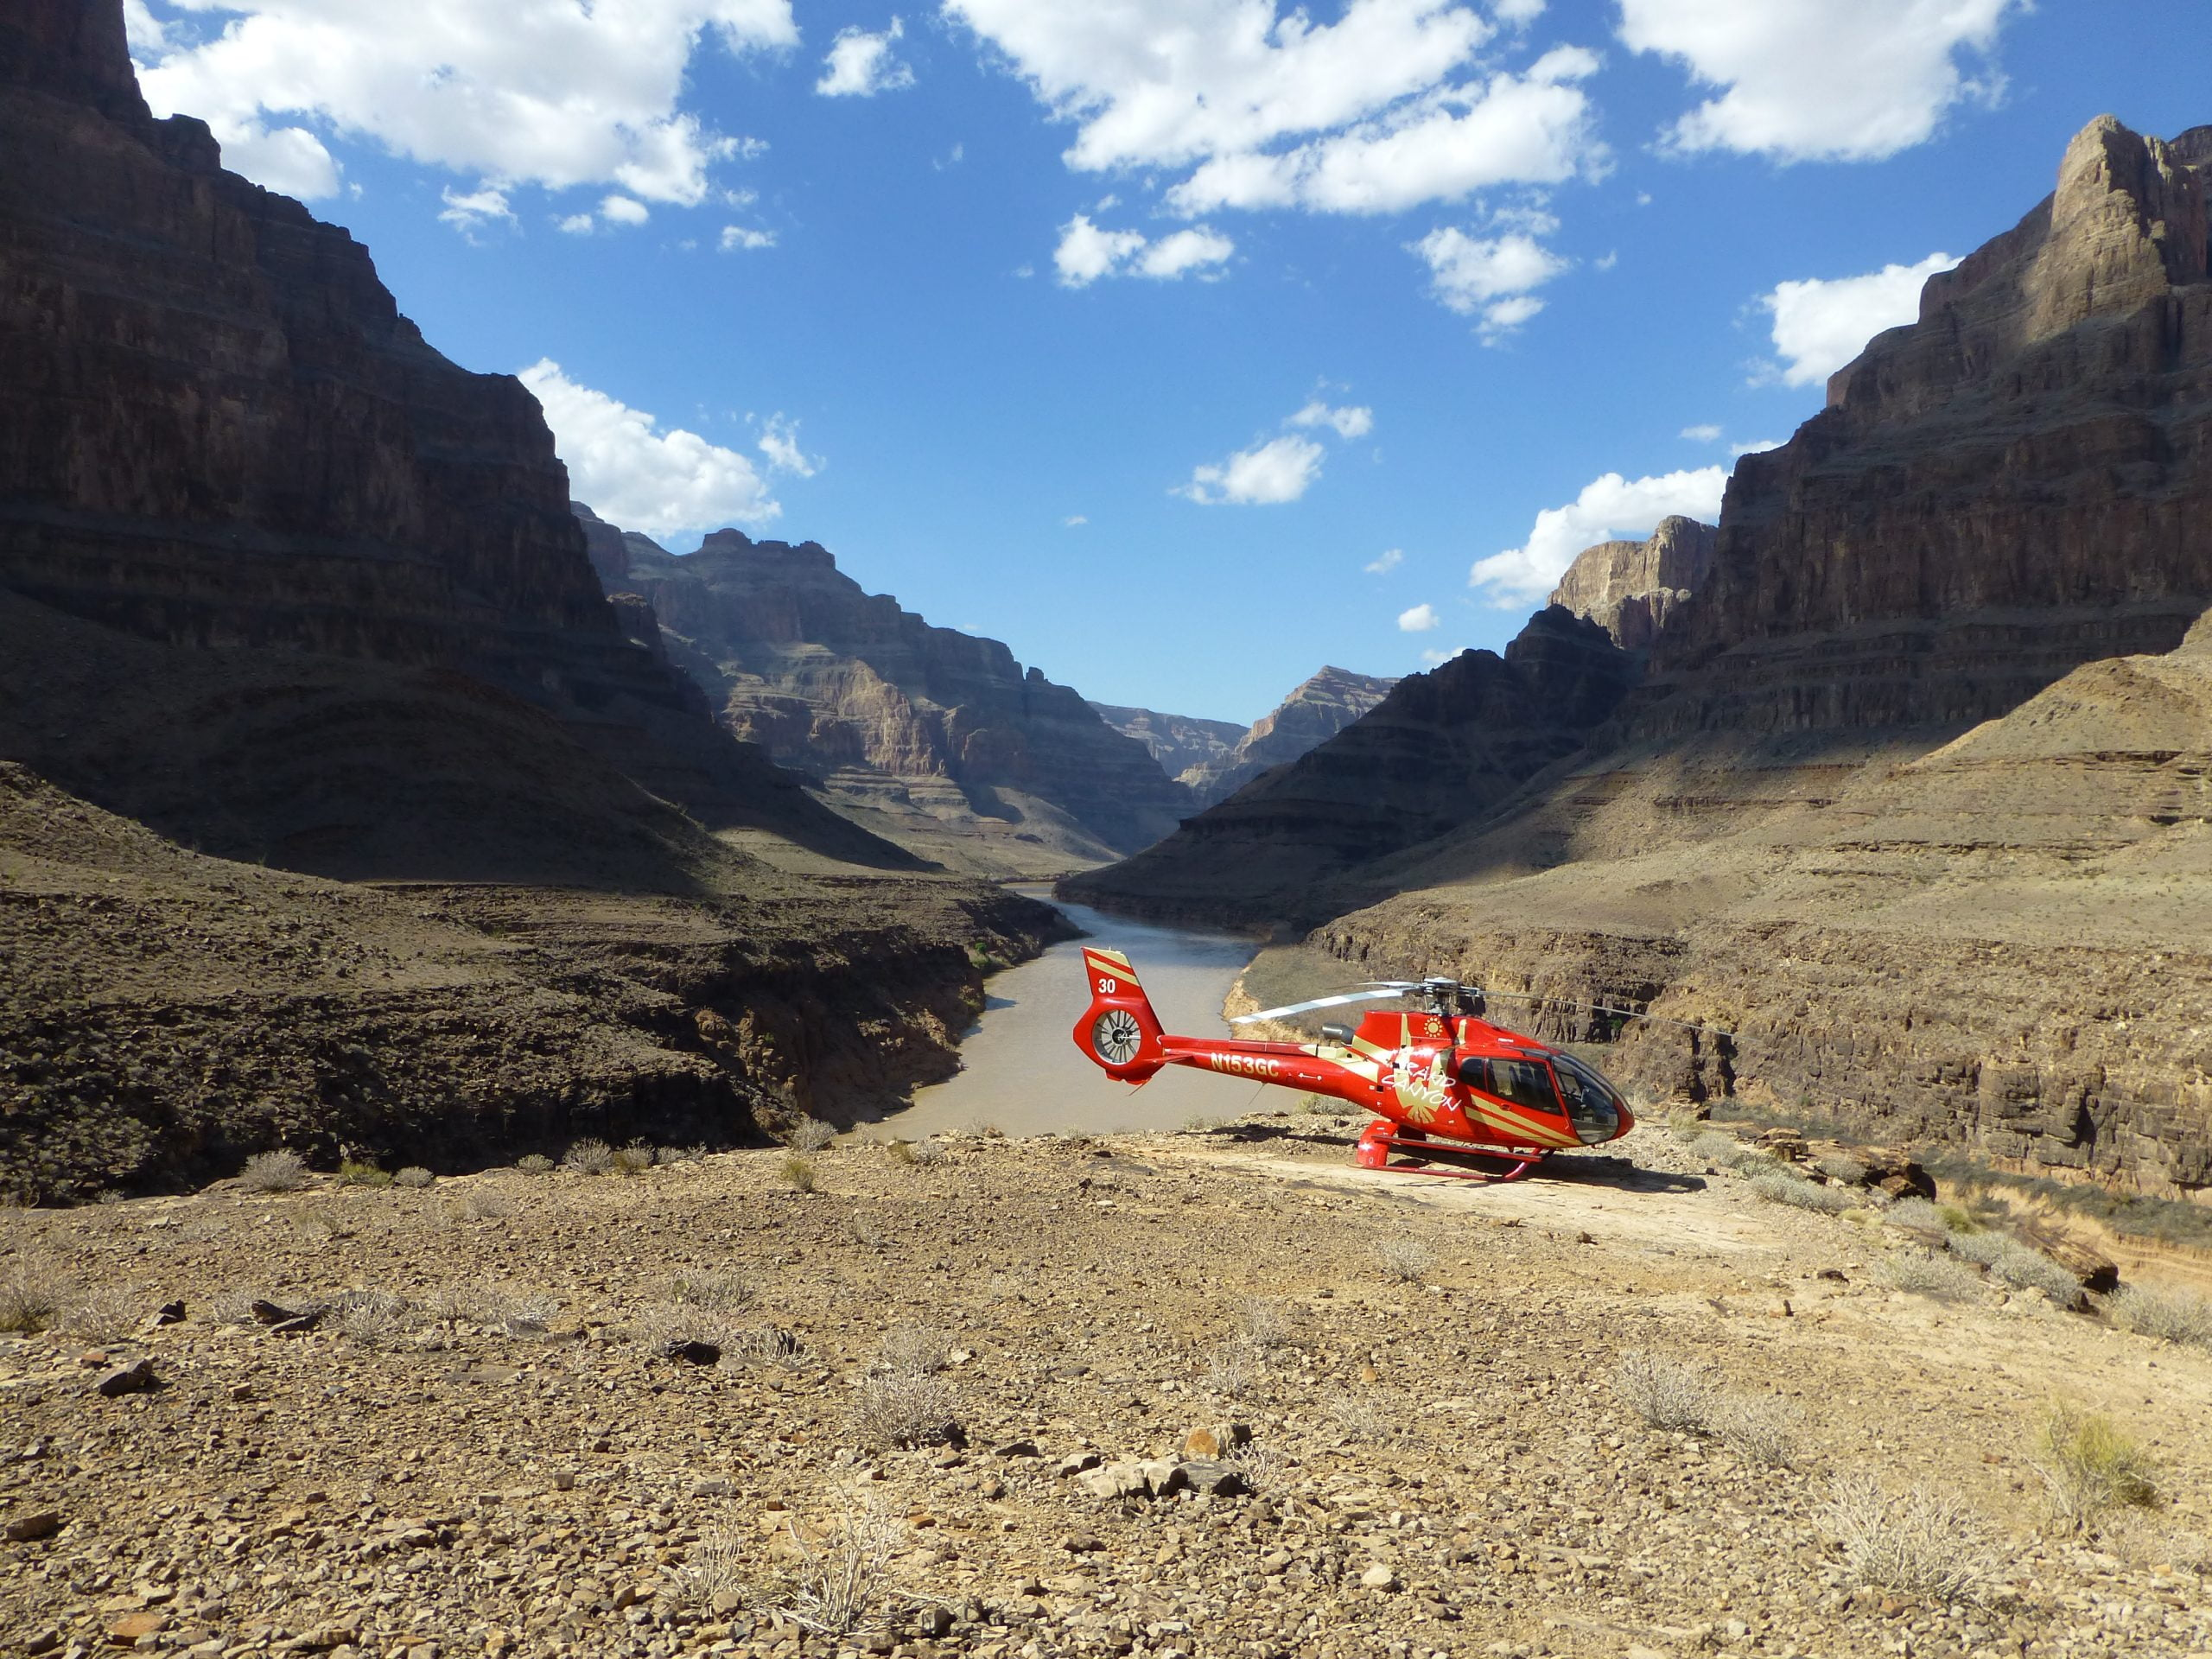 Tour del Grand Canyon in elicottero